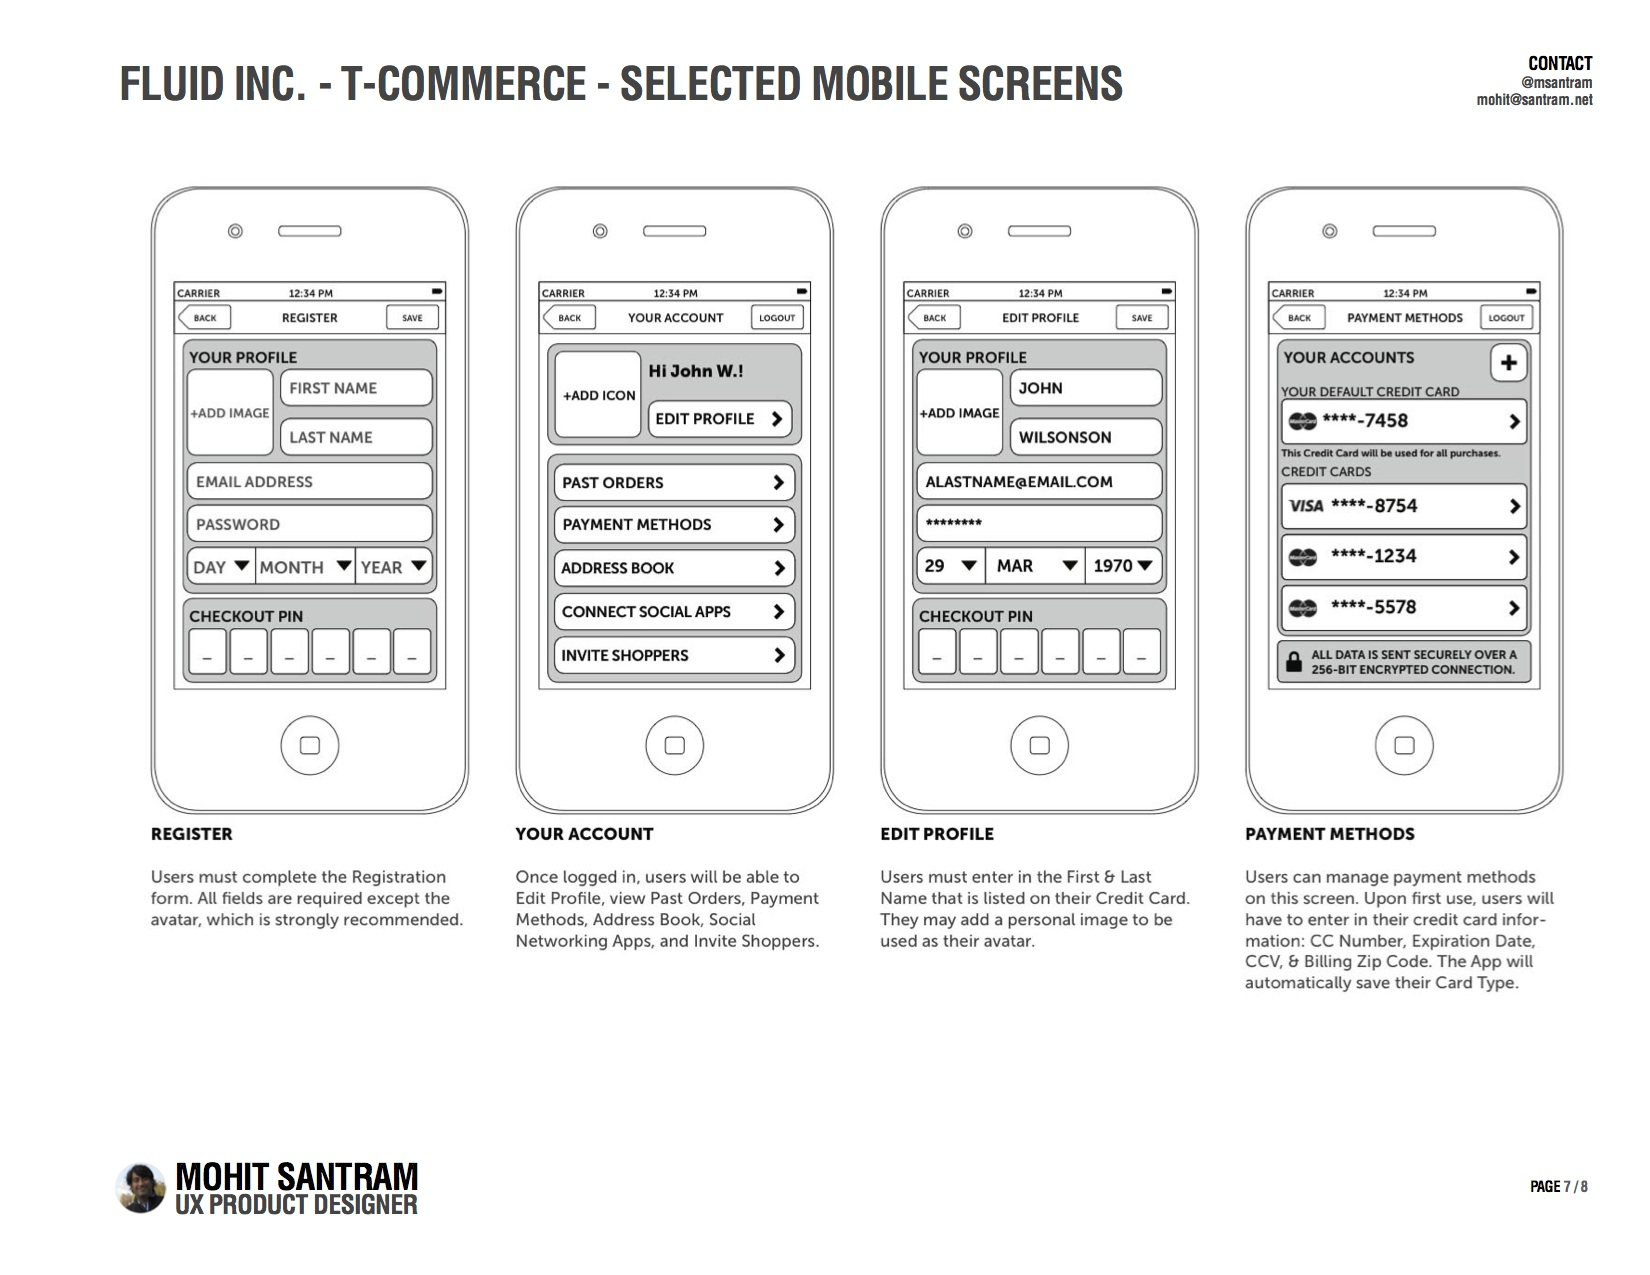 T-Commerce Selected Mobile Screens